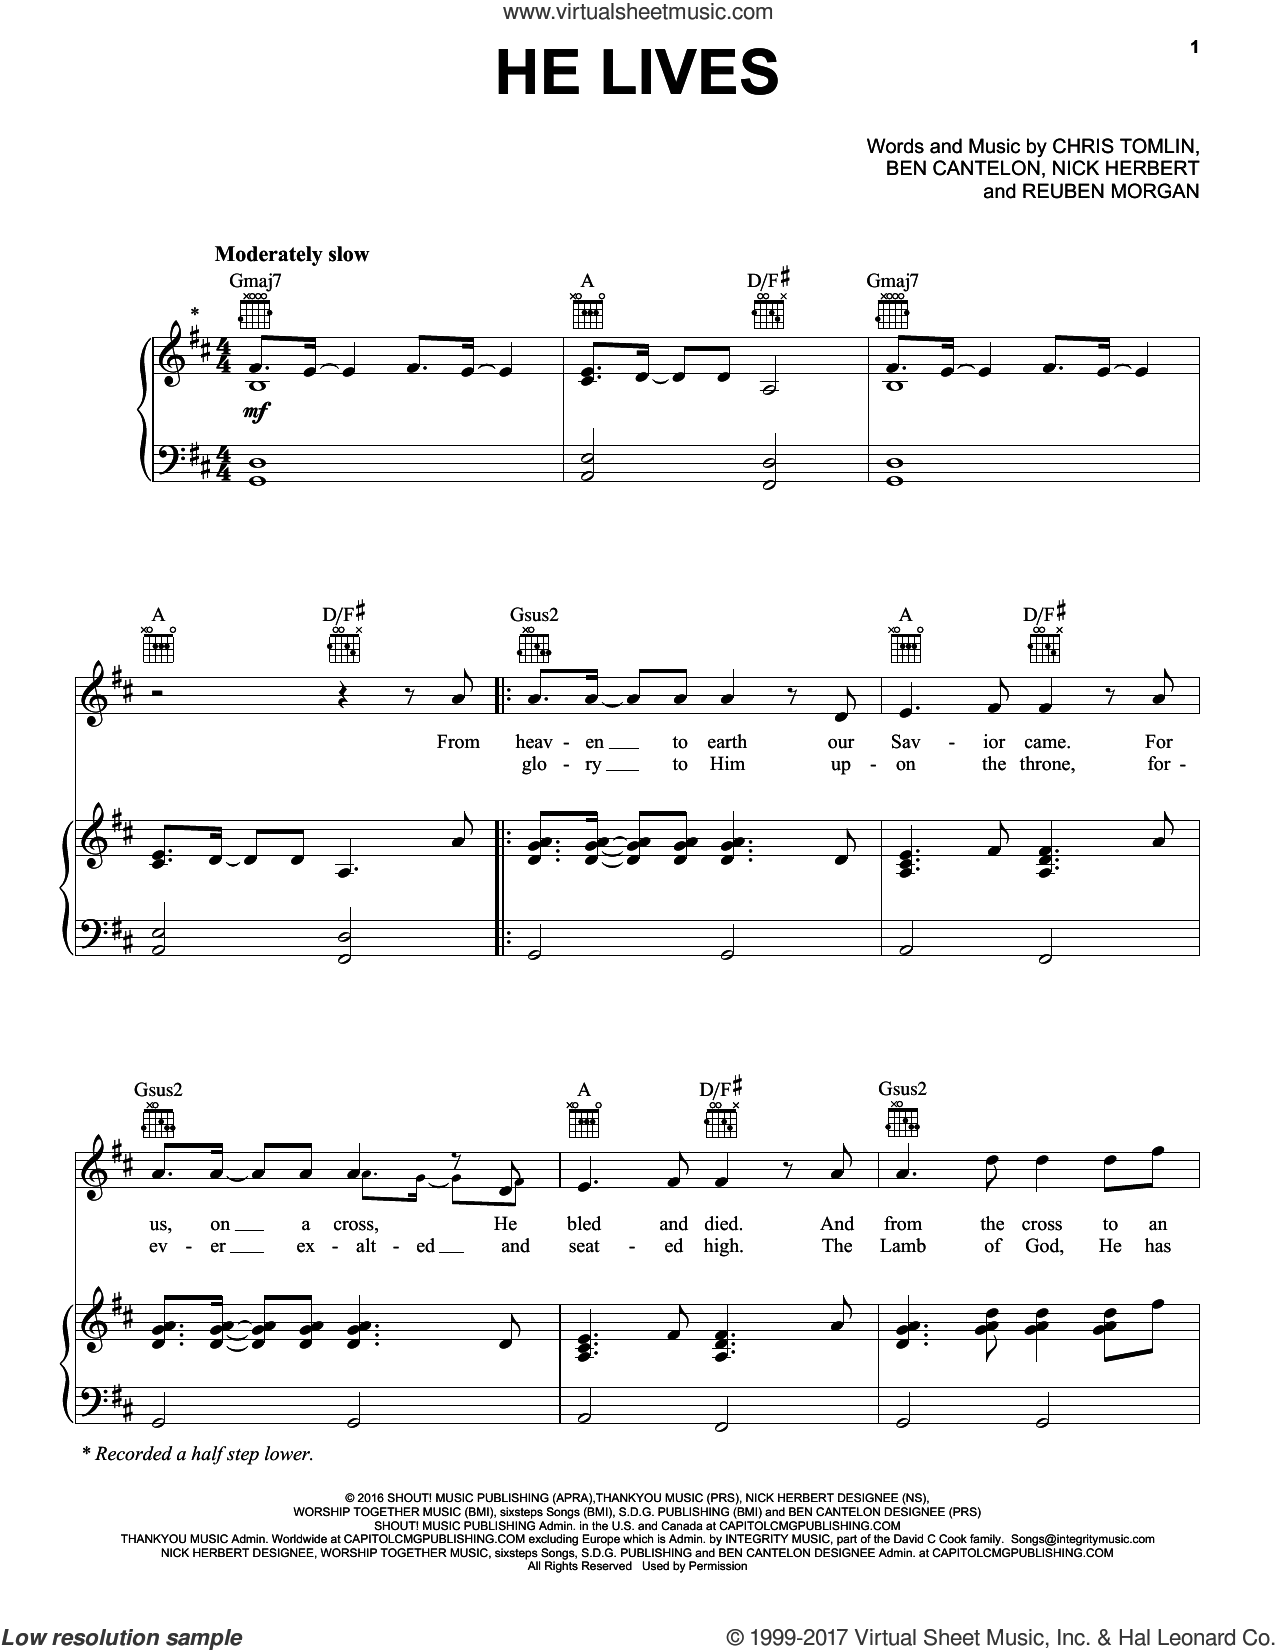 He Lives sheet music for voice, piano or guitar by Chris Tomlin and Reuben Morgan, intermediate voice, piano or guitar. Score Image Preview.